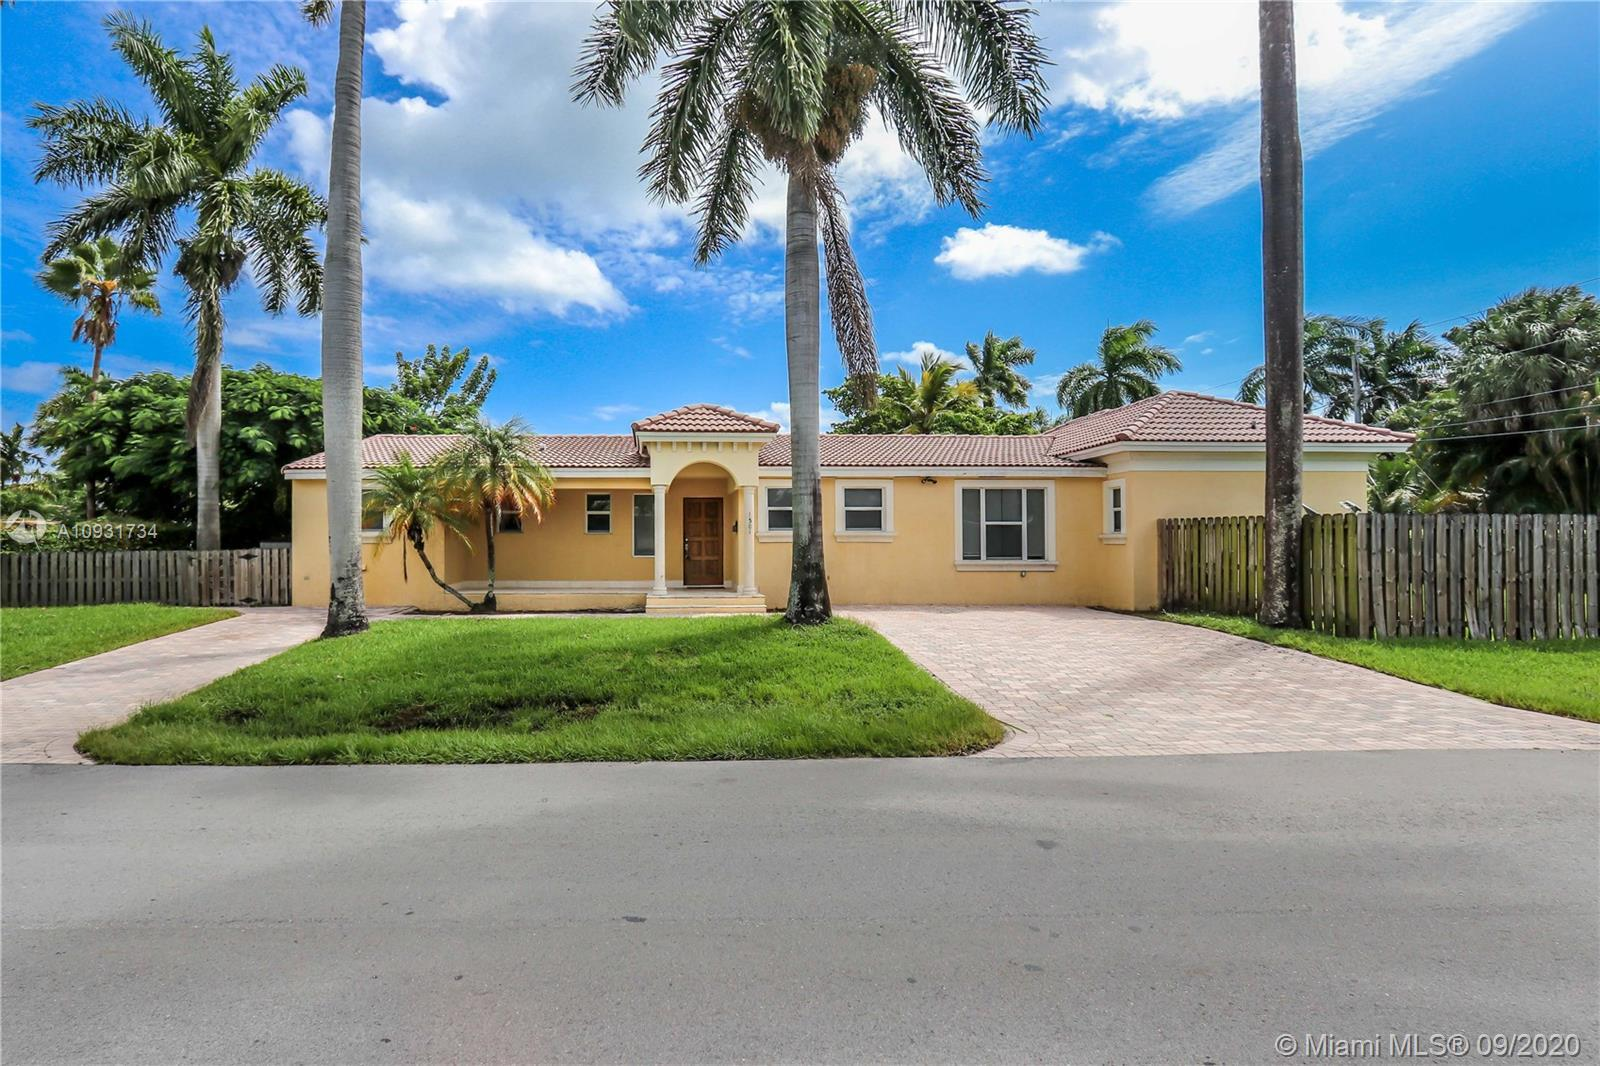 This bright corner home with great curb appeal has 4 bedrooms and 3 full bathrooms with elegant marb